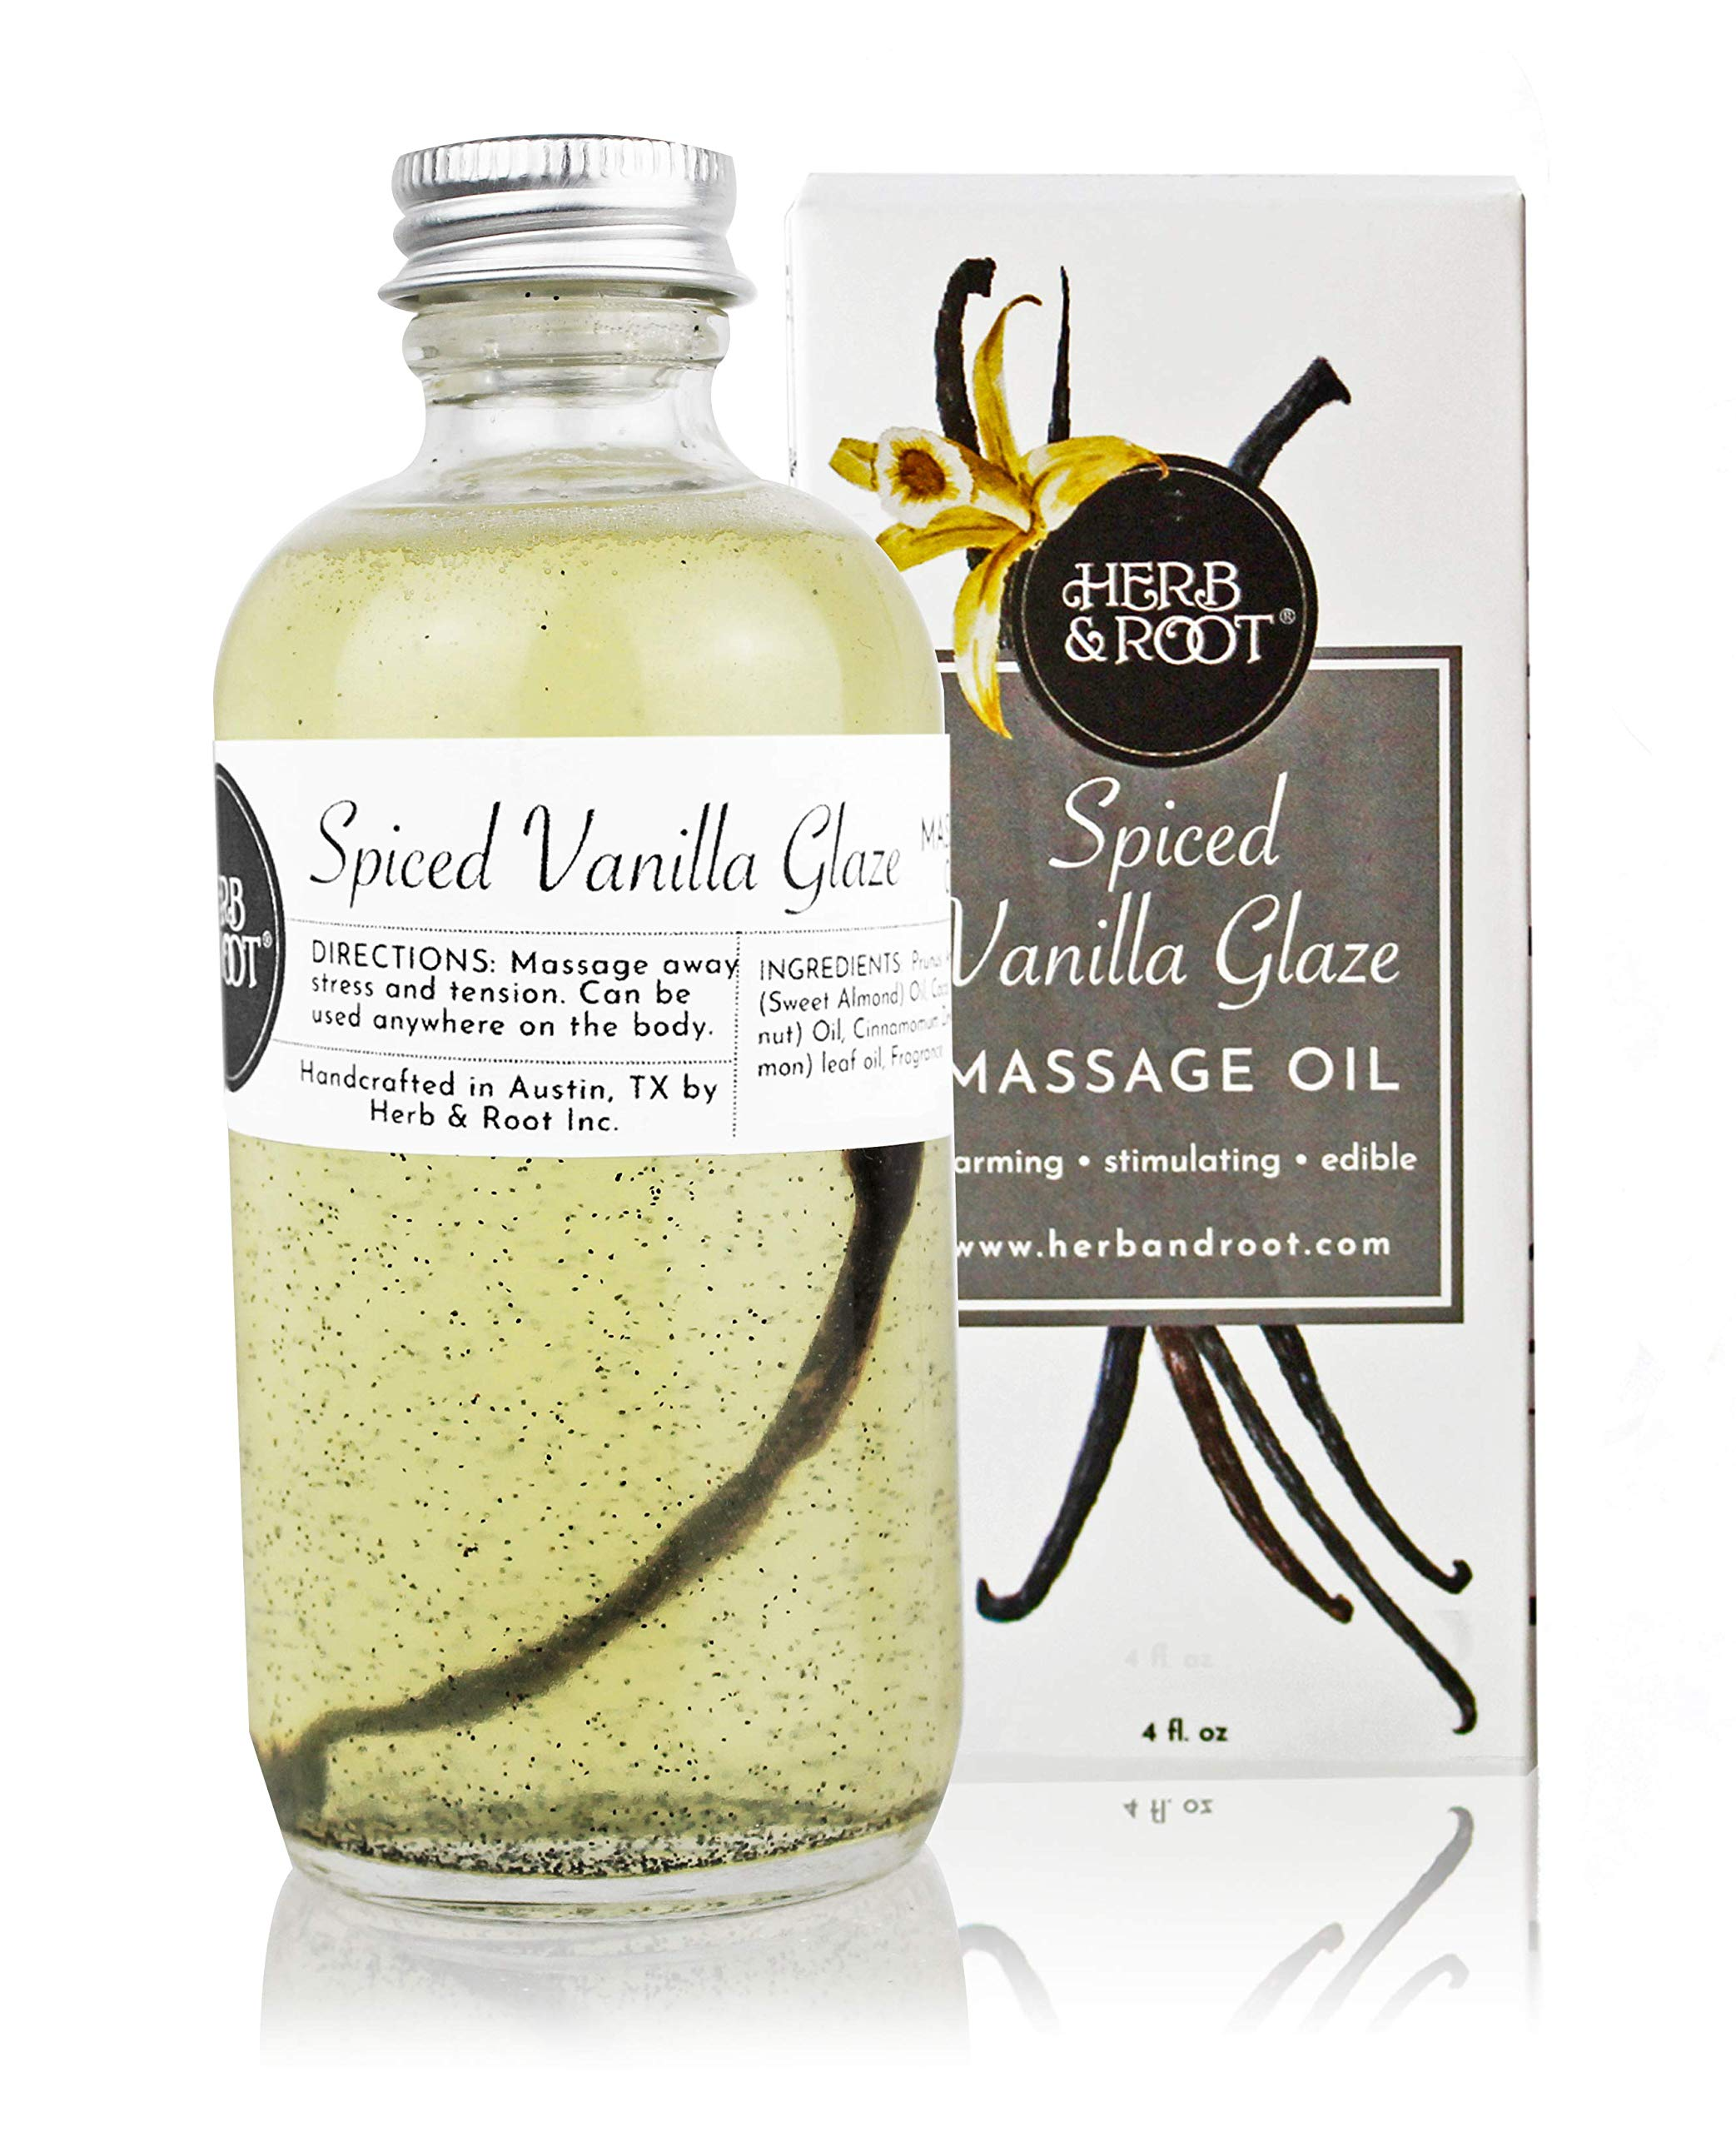 Edible Vanilla Massage Oil with Warming Cinnamon Spice to Relax The Muscles | Non-Greasy Blend of Almond and Coconut Oils